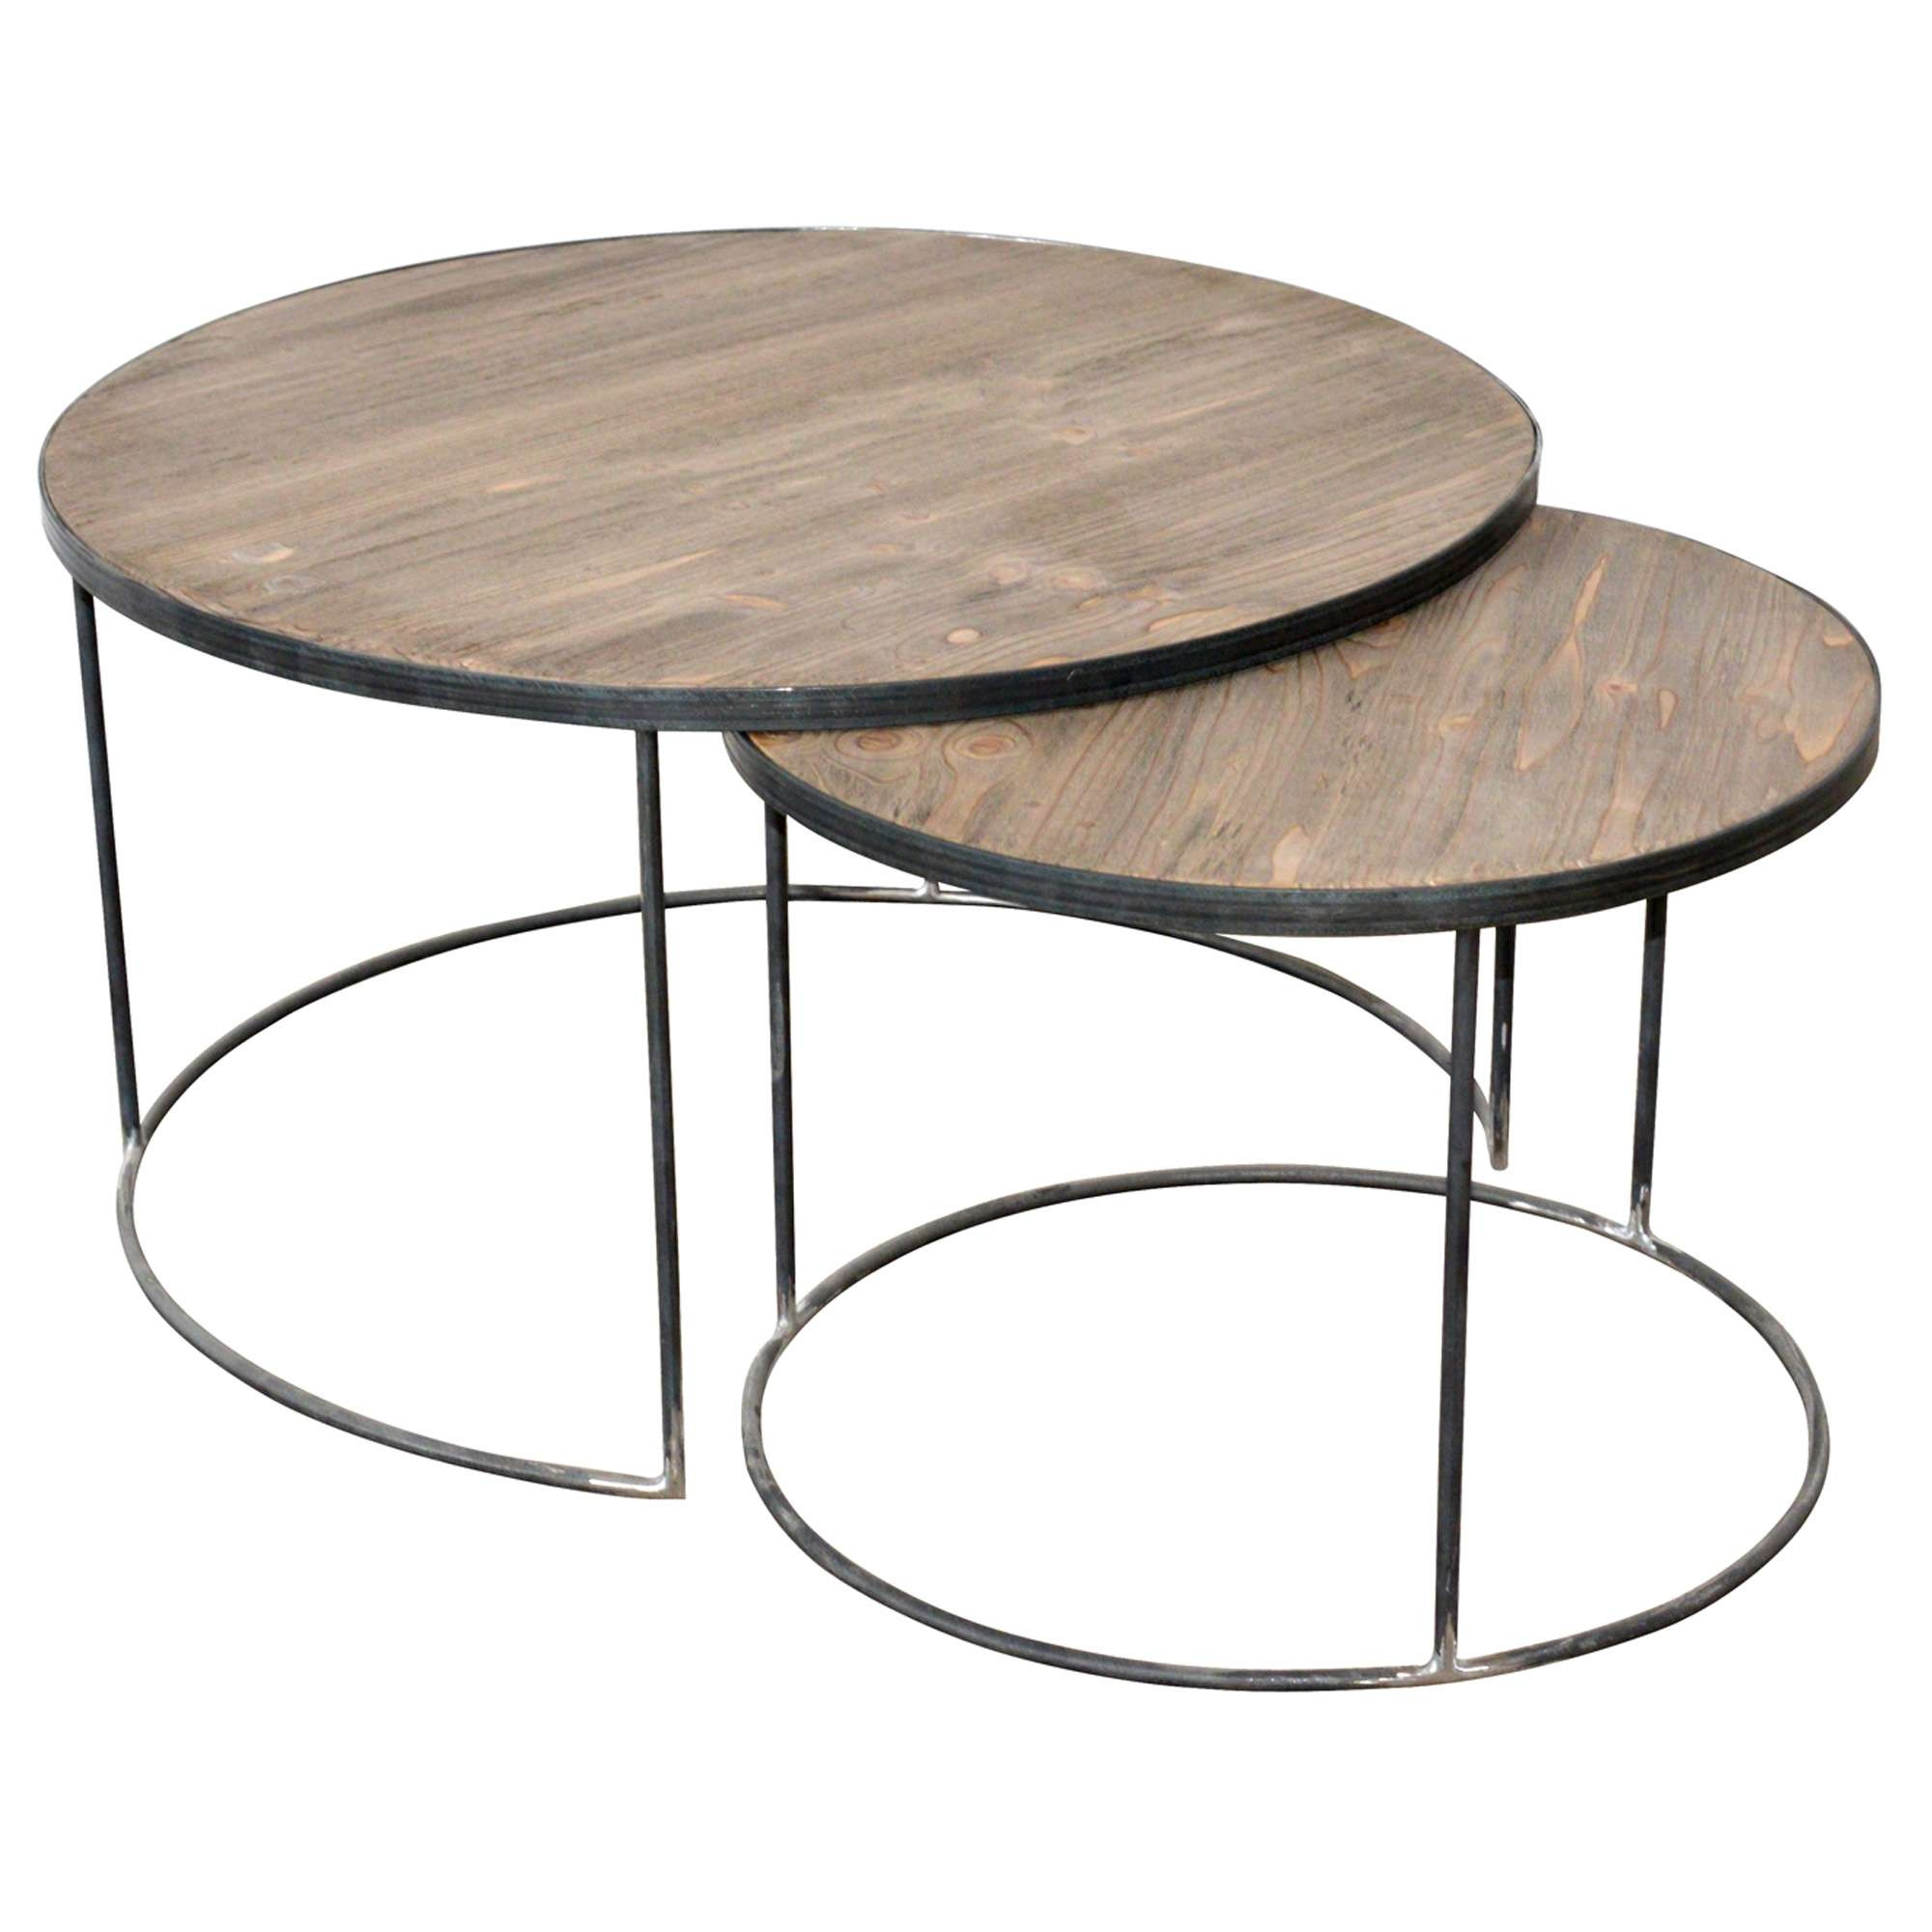 Well Known Circular Coffee Tables Intended For Good Round Coffee Table Set 55 In Home Decoration Ideas With Round (View 3 of 20)